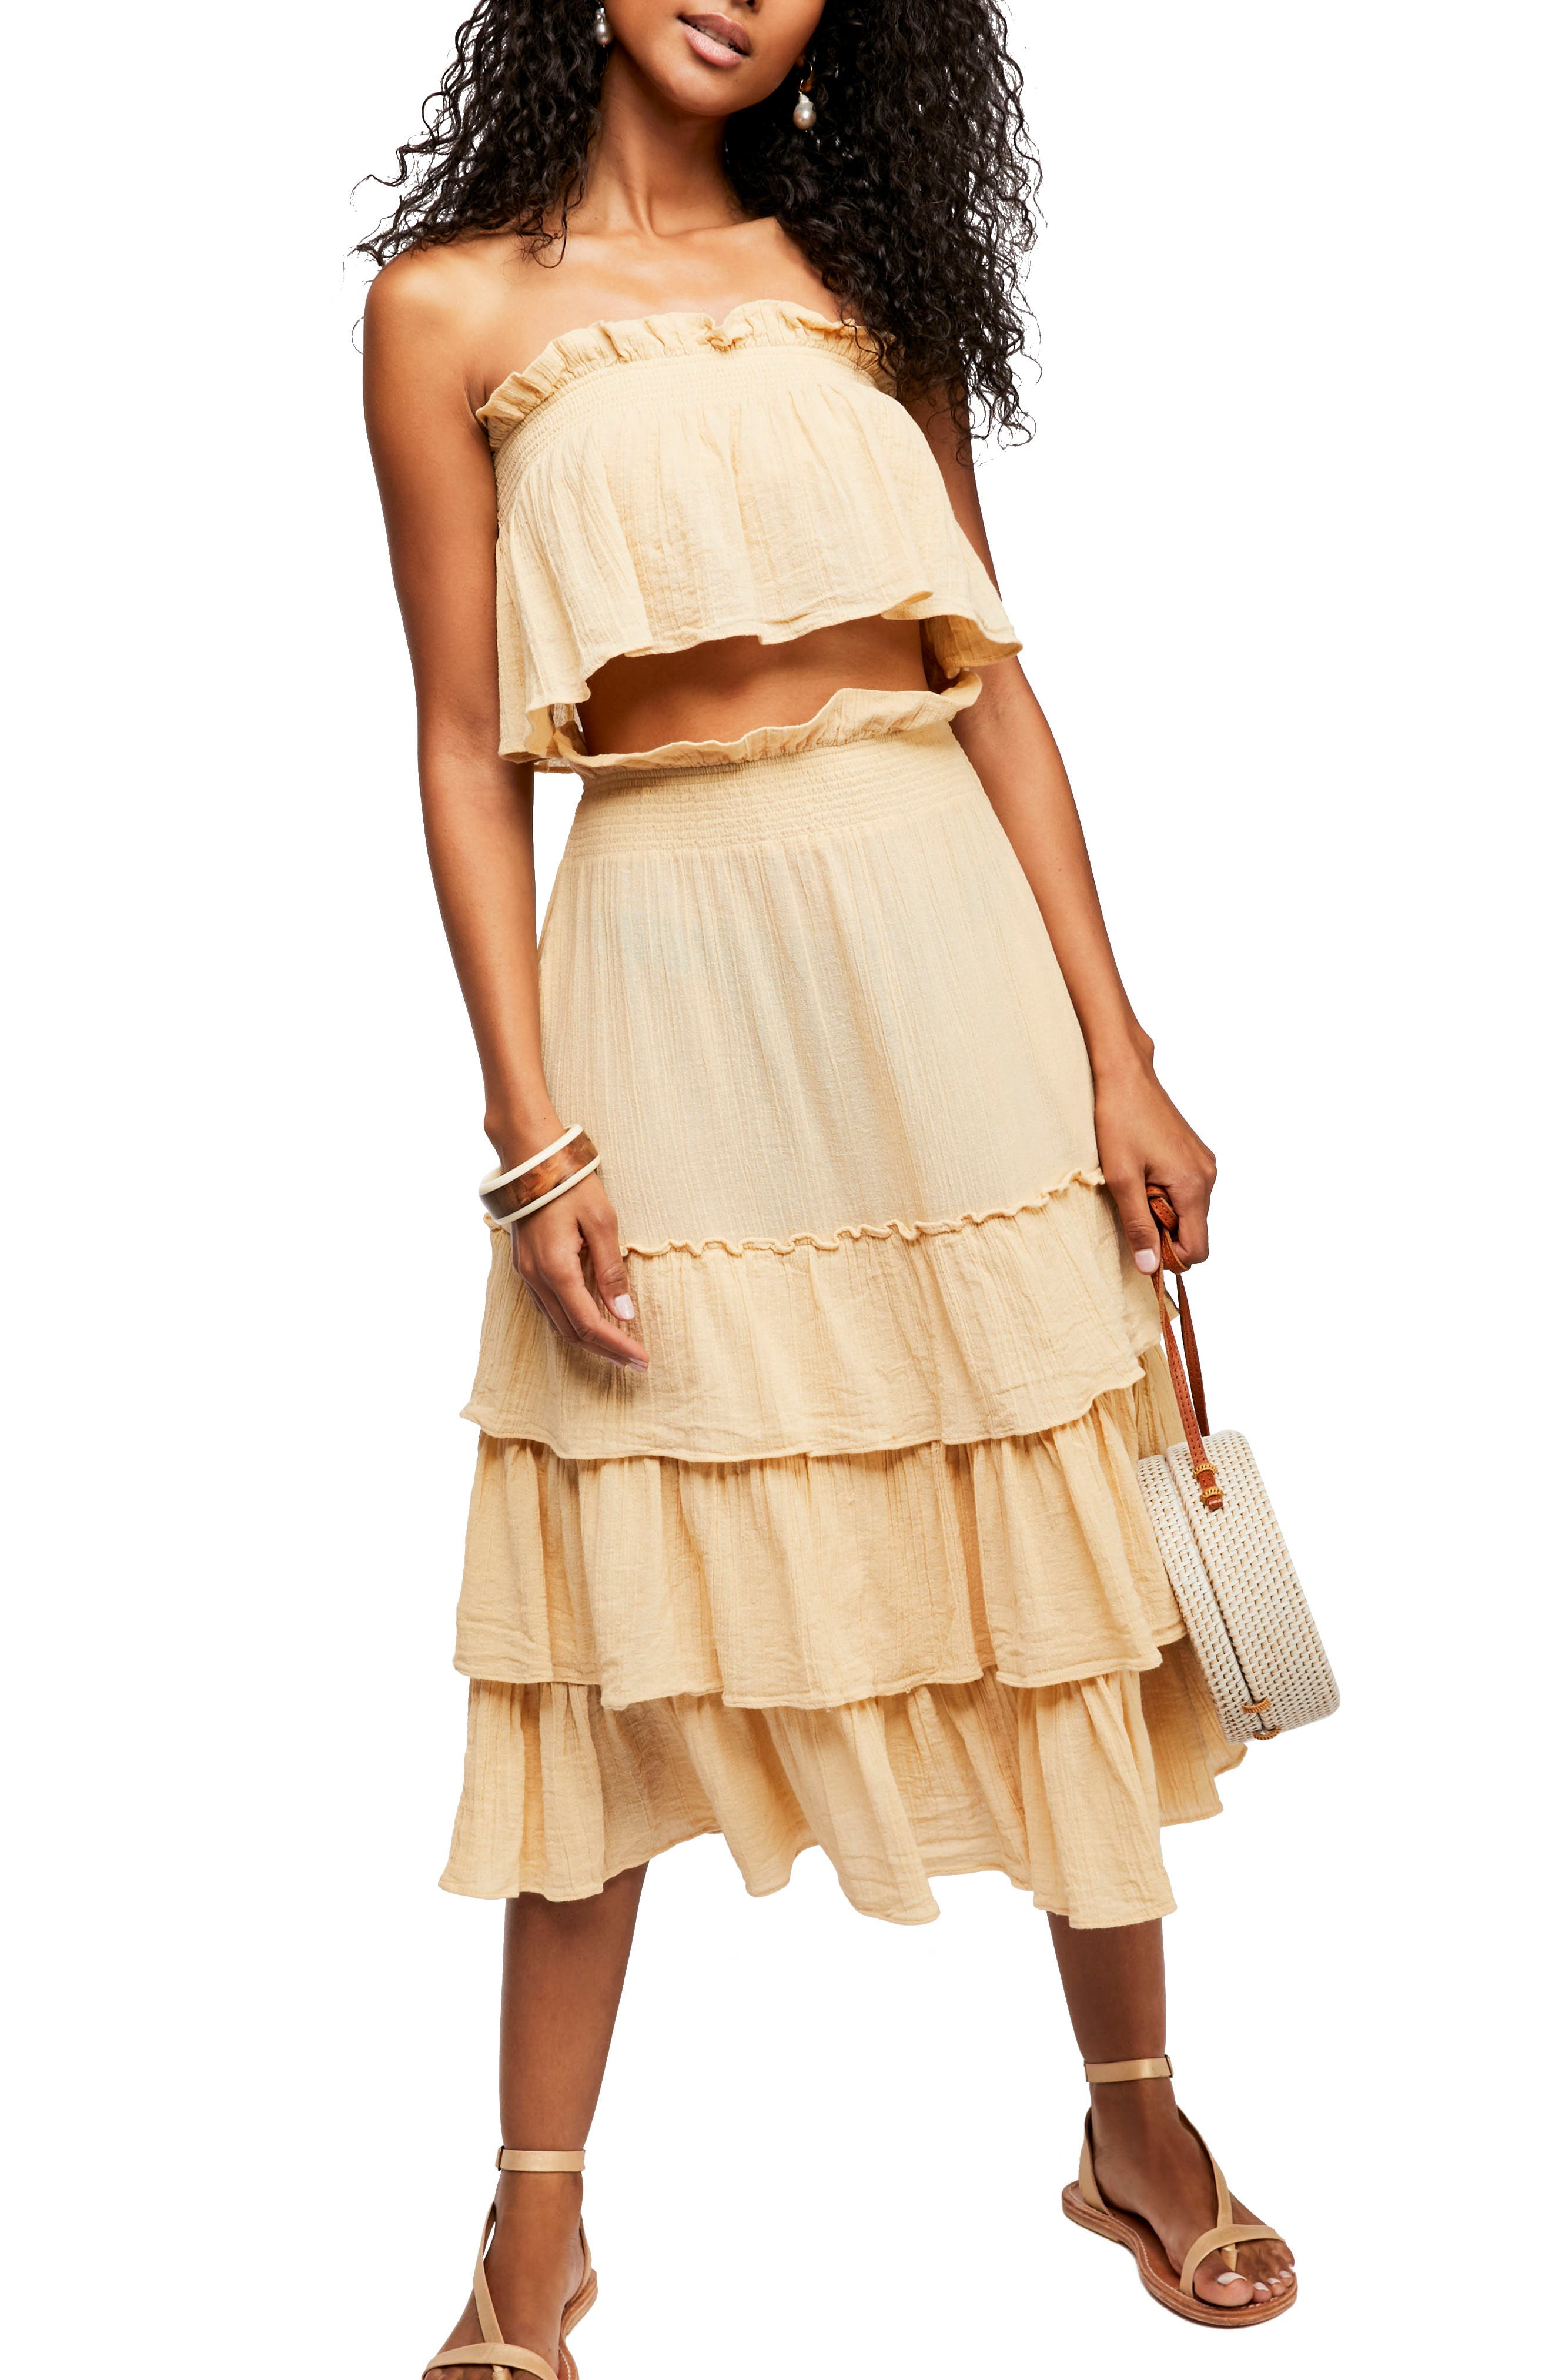 Endless Summer By Free People Sea Breeze Strapless Crop Top & Midi Skirt by Free People